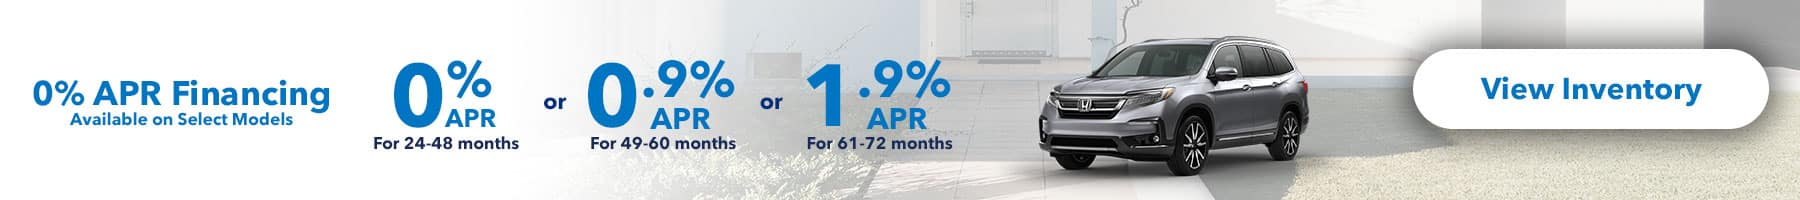 0% APR Financing Available on Select Models